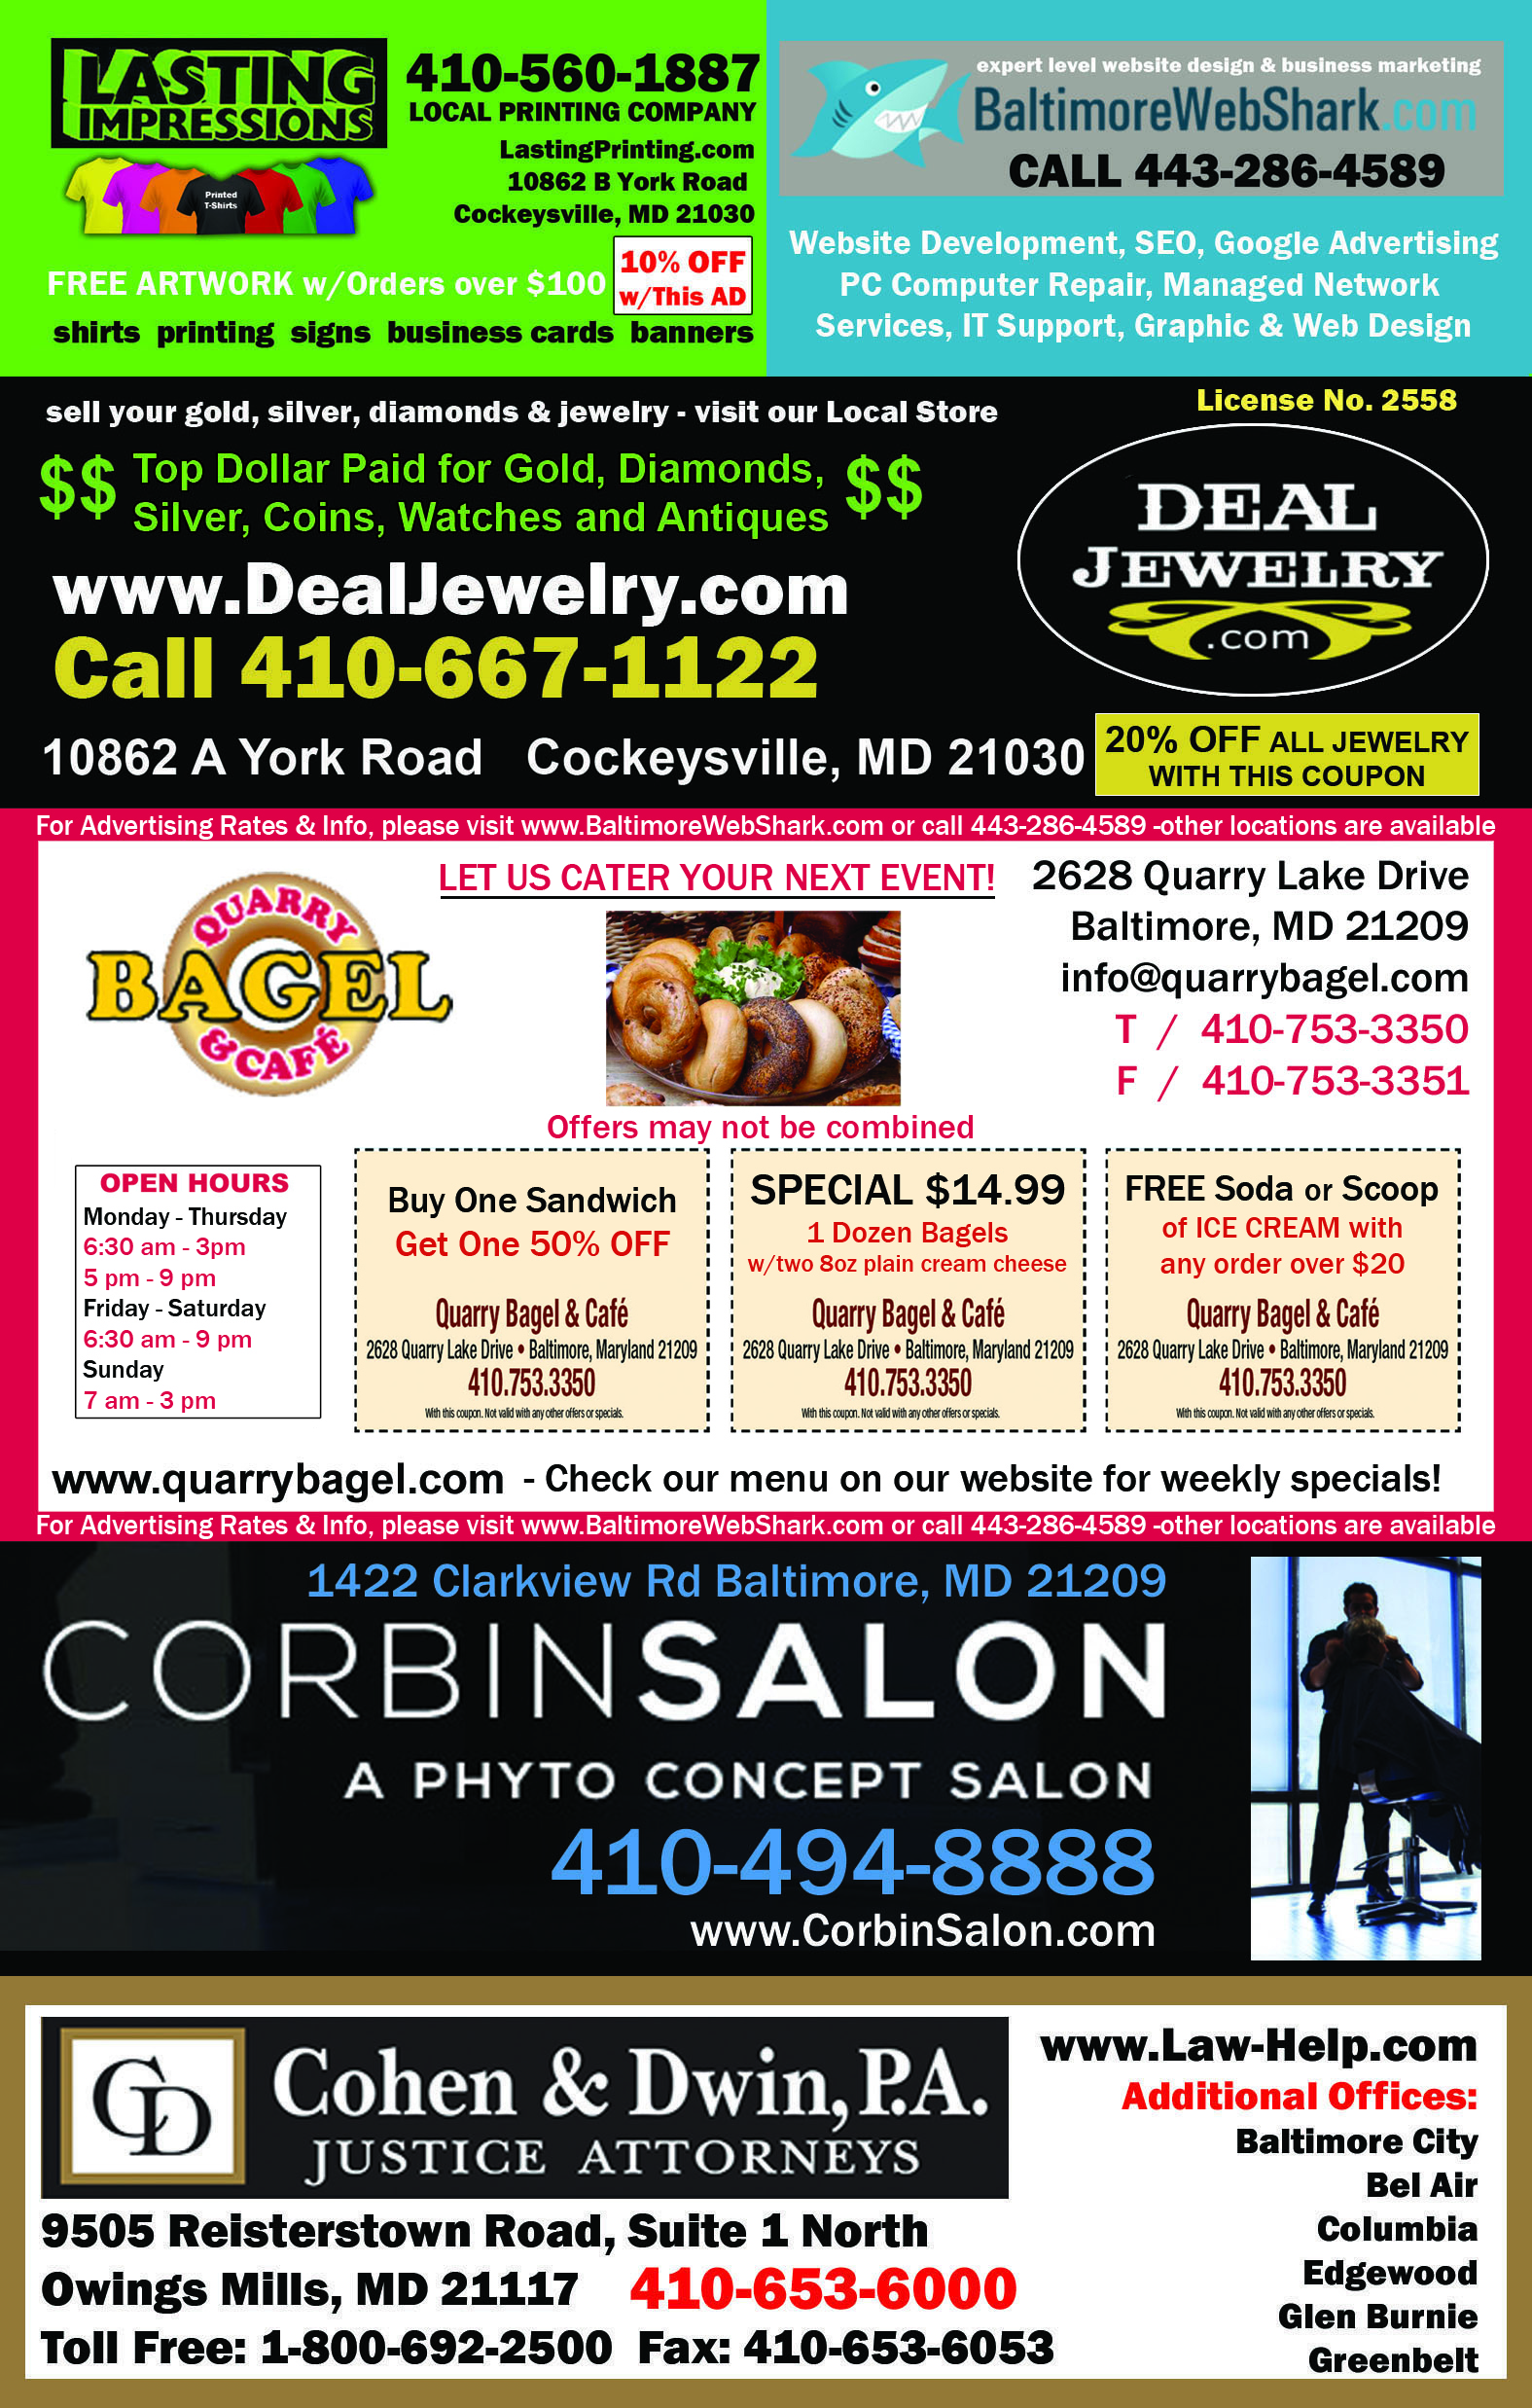 Quarry-Bagel-Pikesville-carryout-flyer-updated-3-20-15-versionB